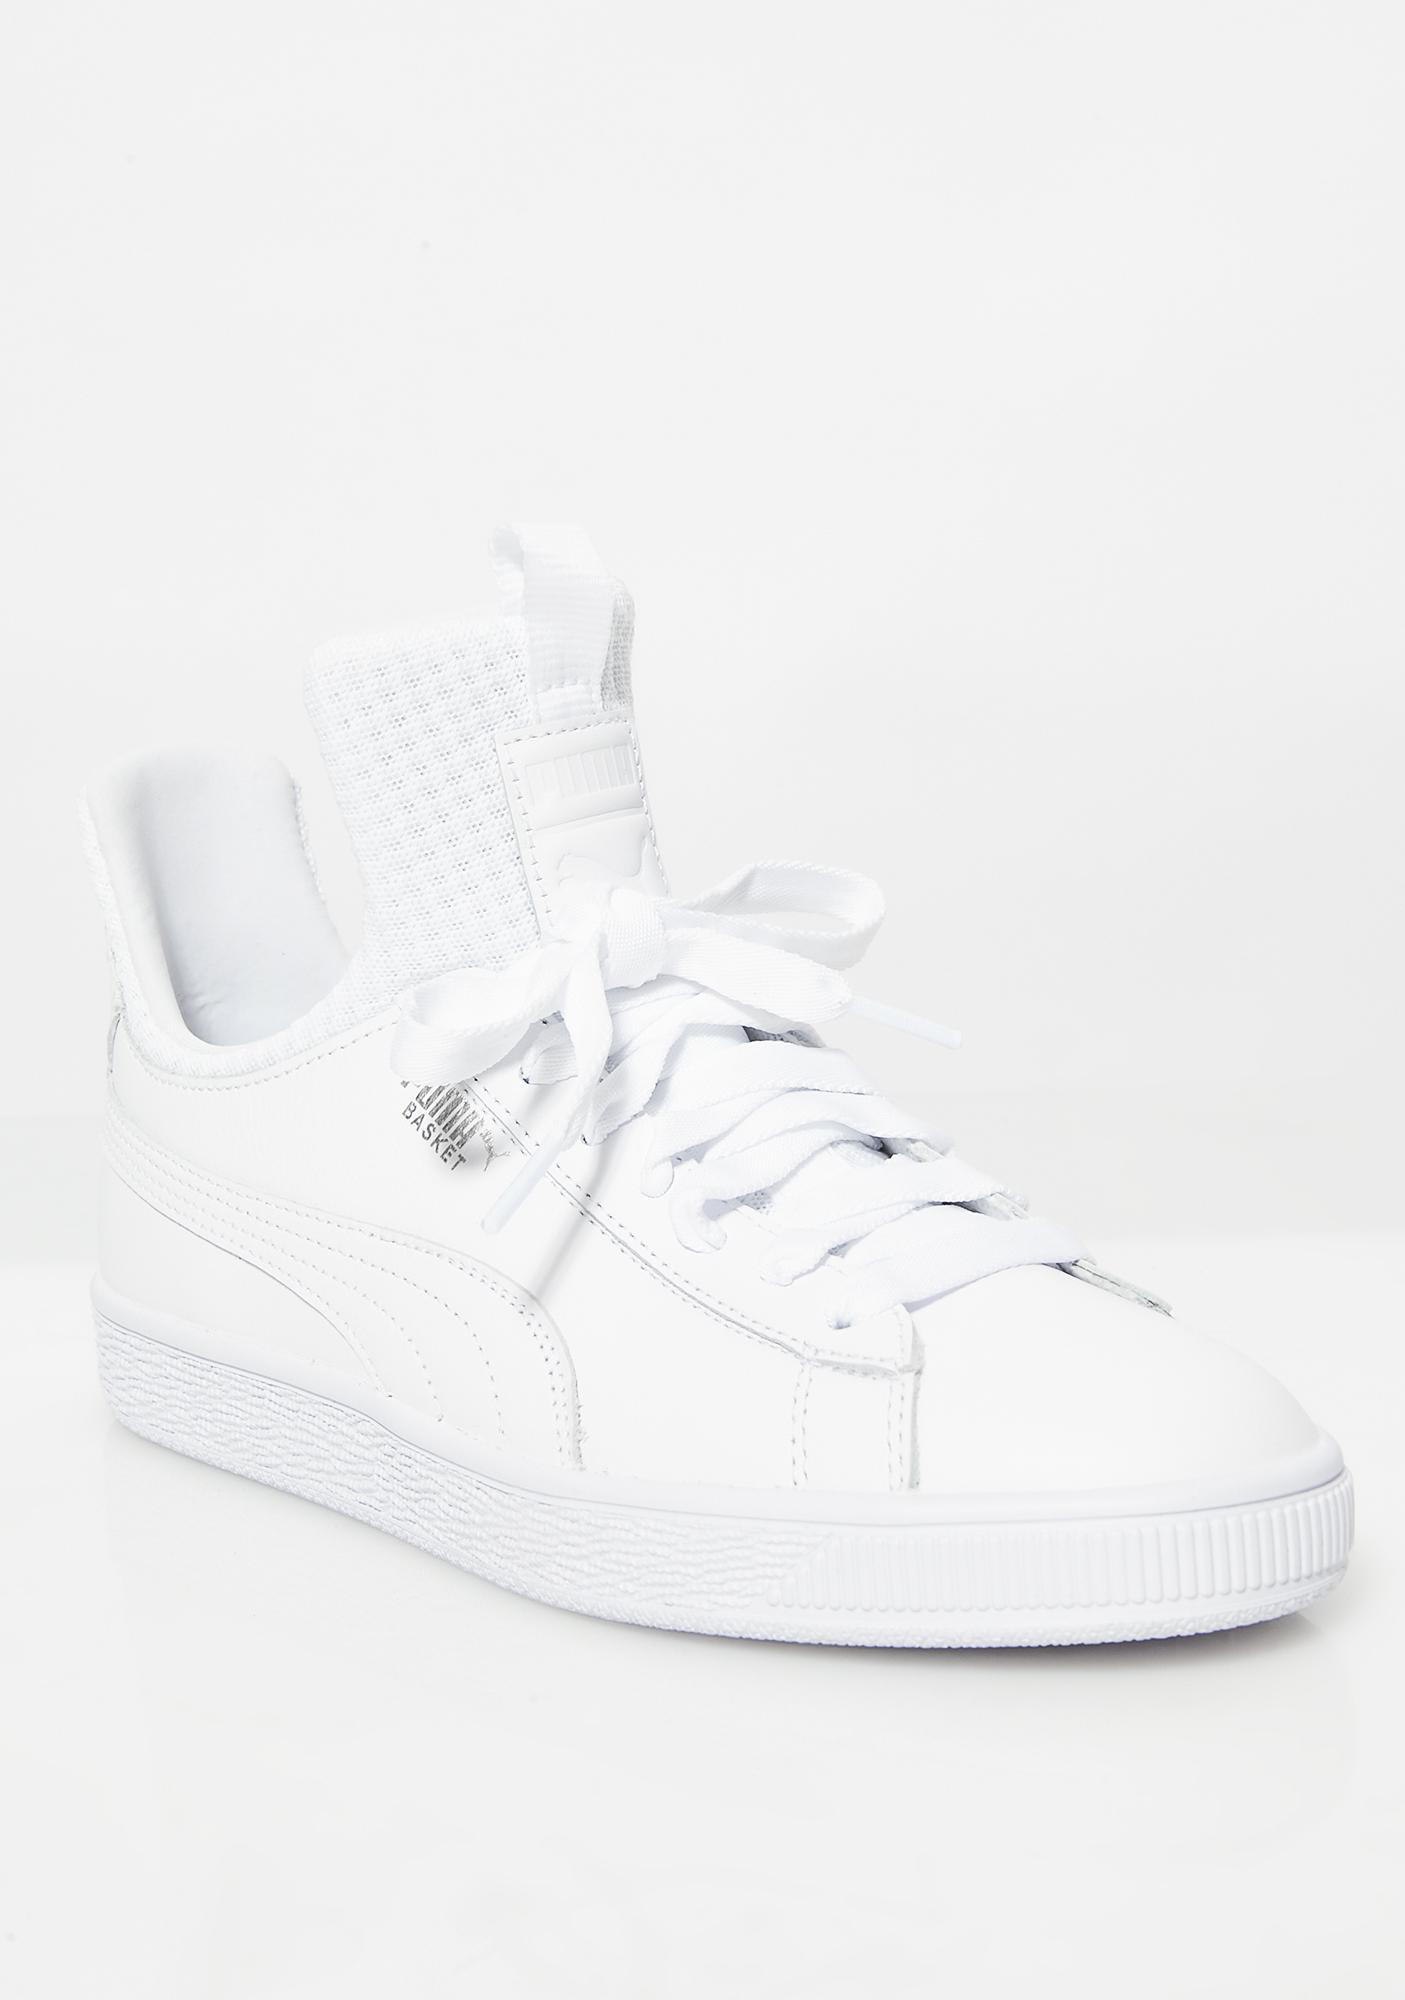 33b868a931ffa ... PUMA Basket Fierce Sneakers